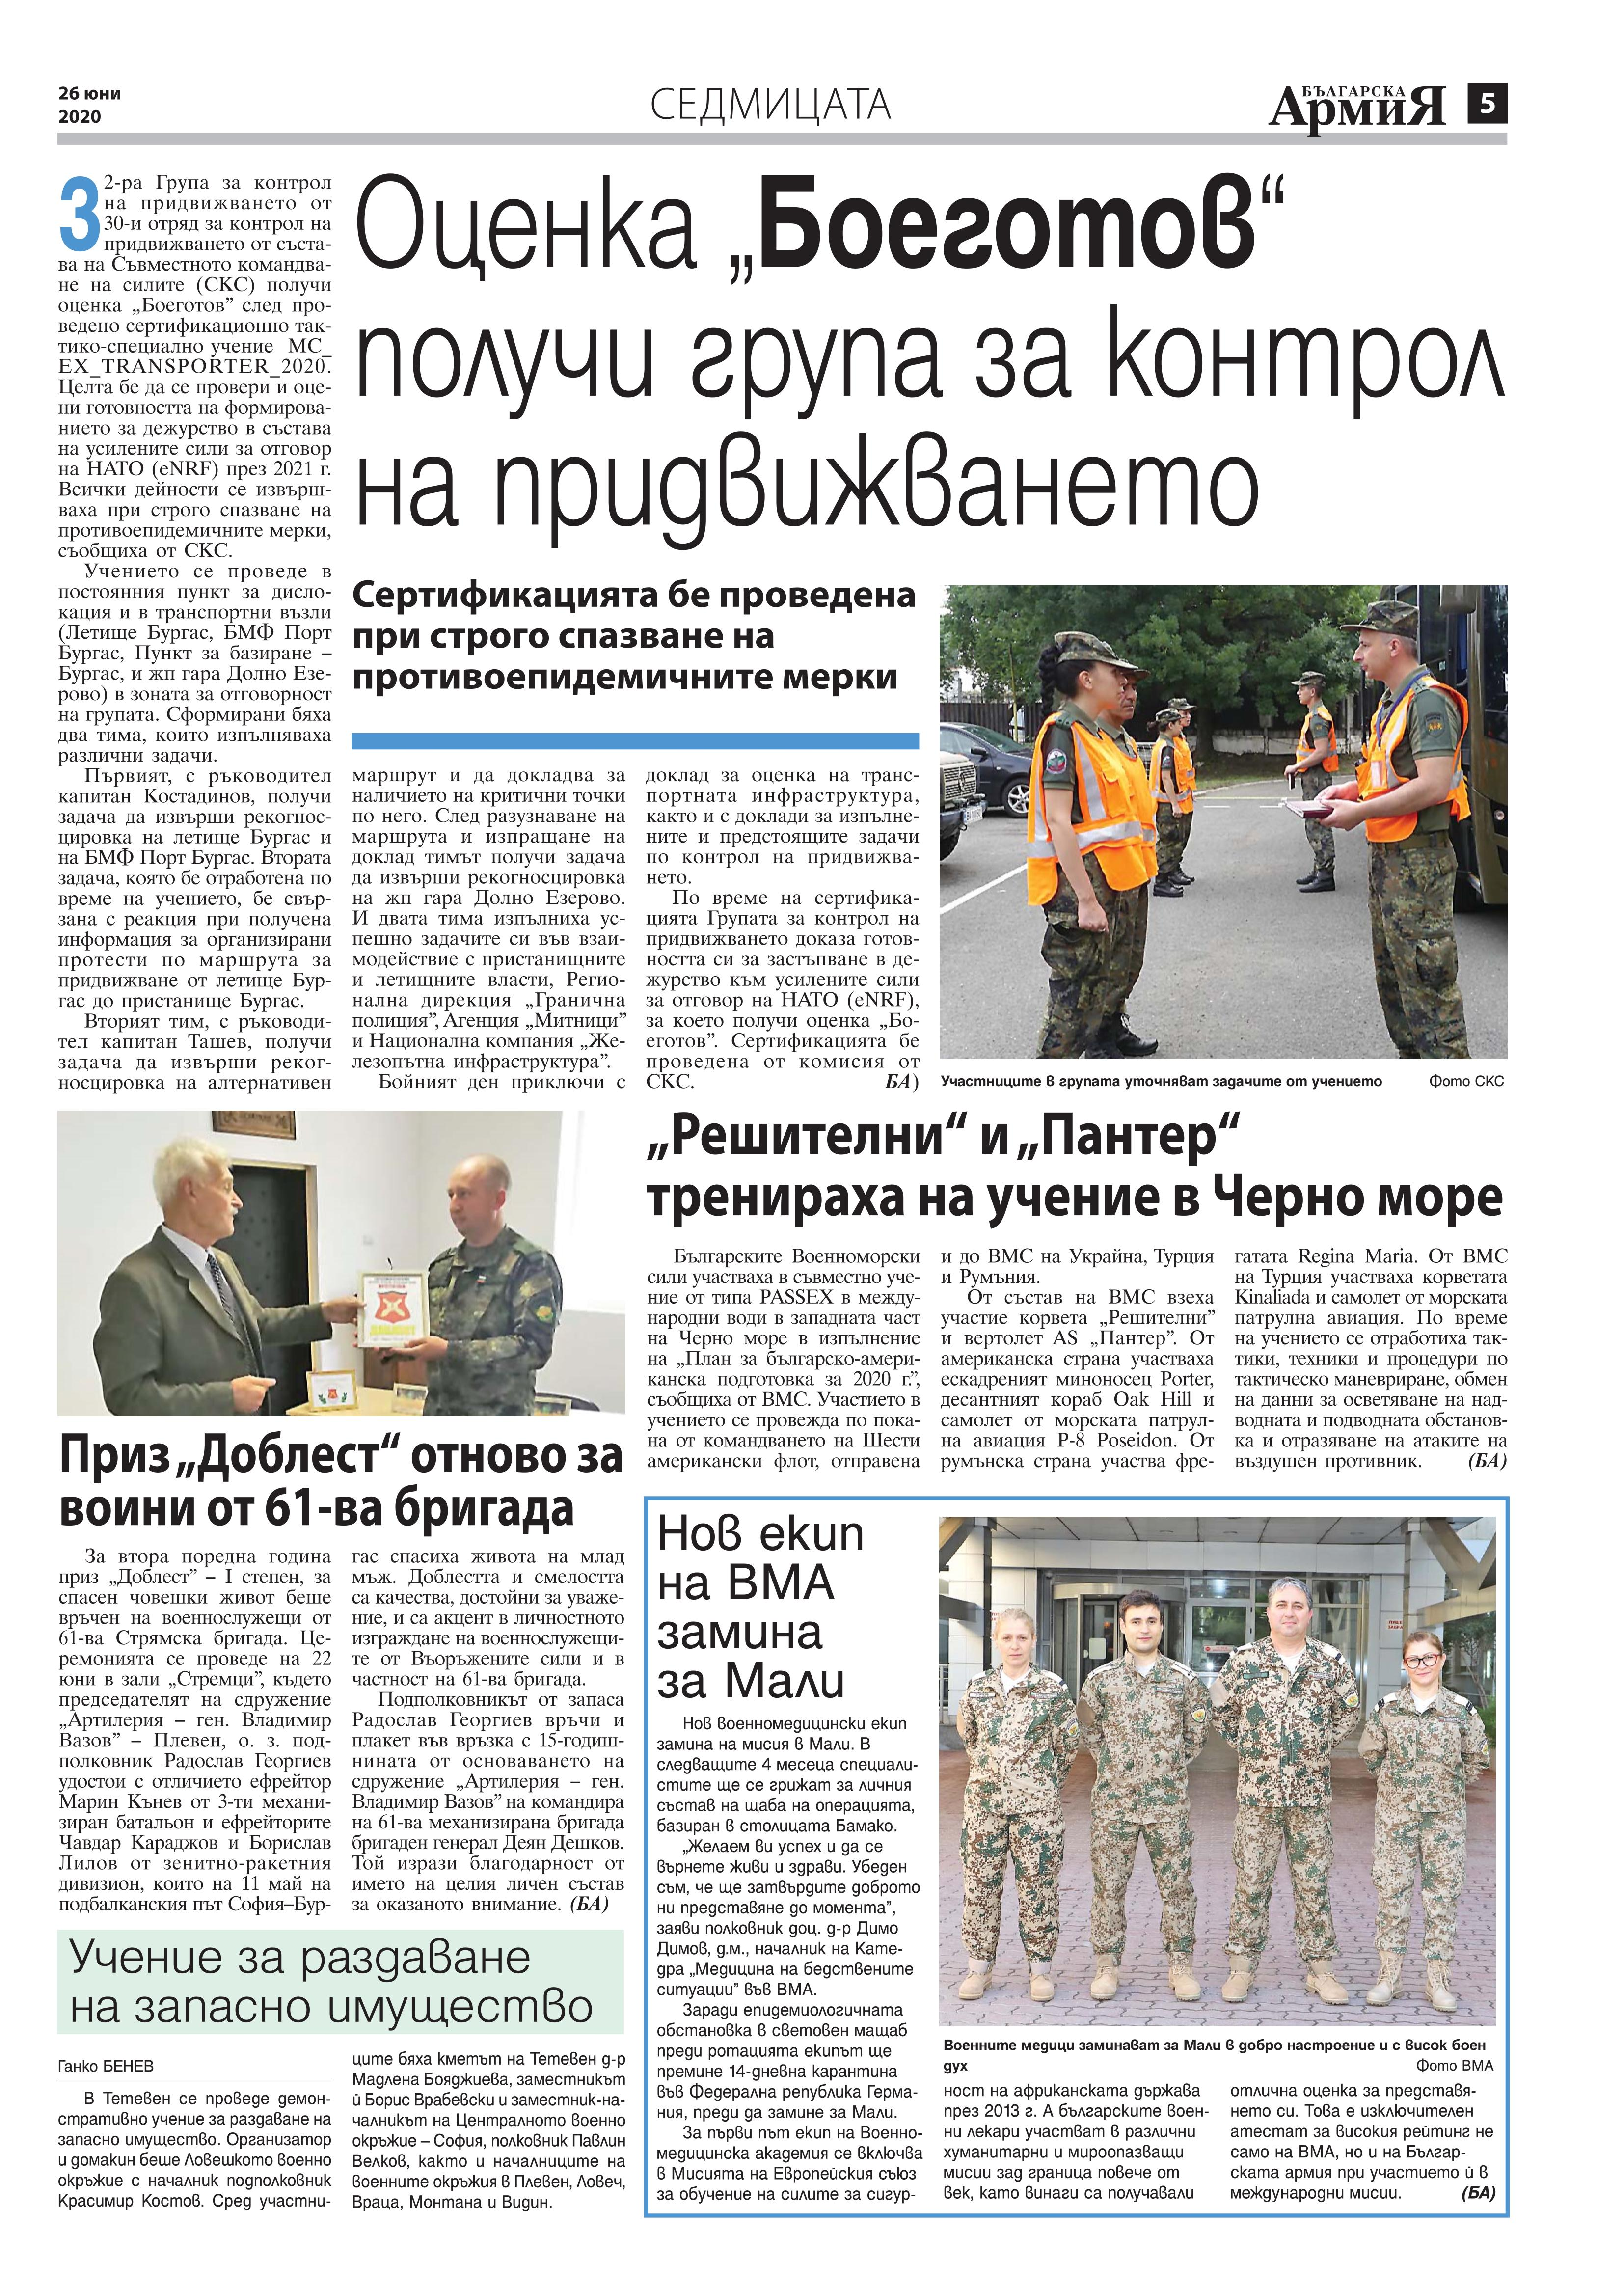 https://www.armymedia.bg/wp-content/uploads/2015/06/05.page1_-141.jpg